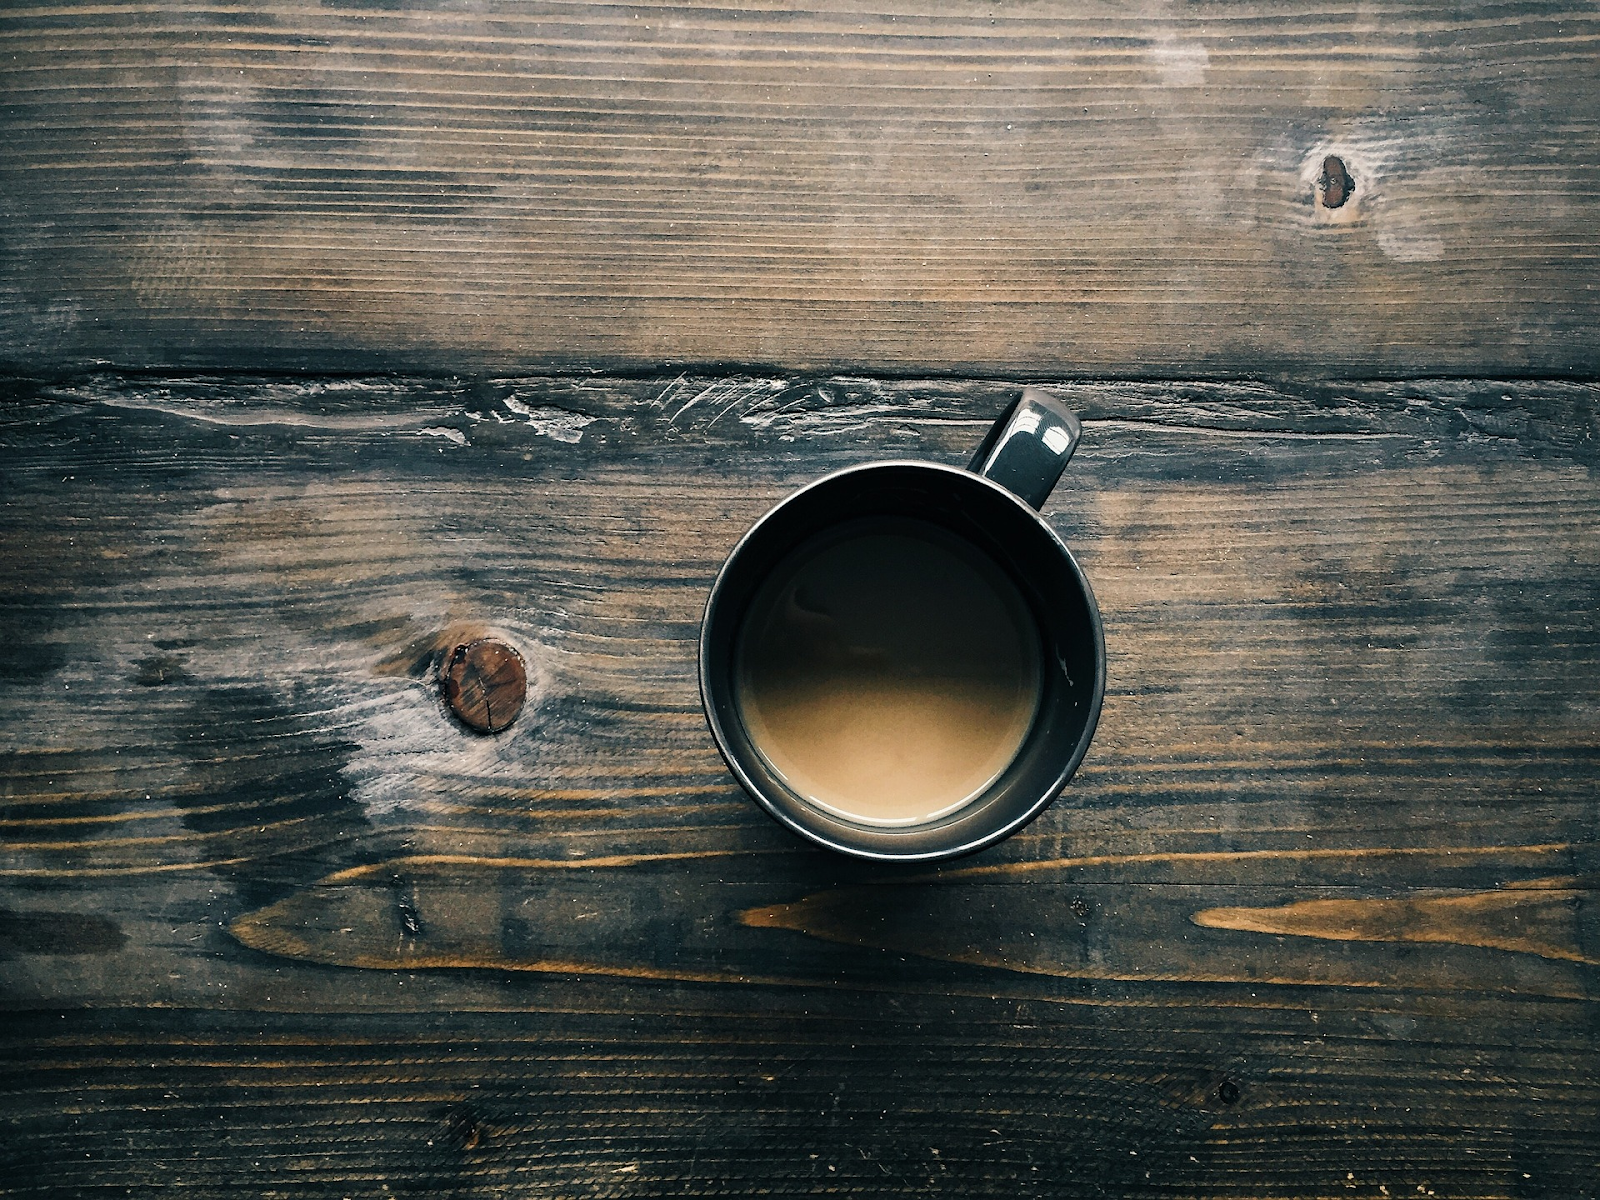 overhead view of coffee mug on wooden table